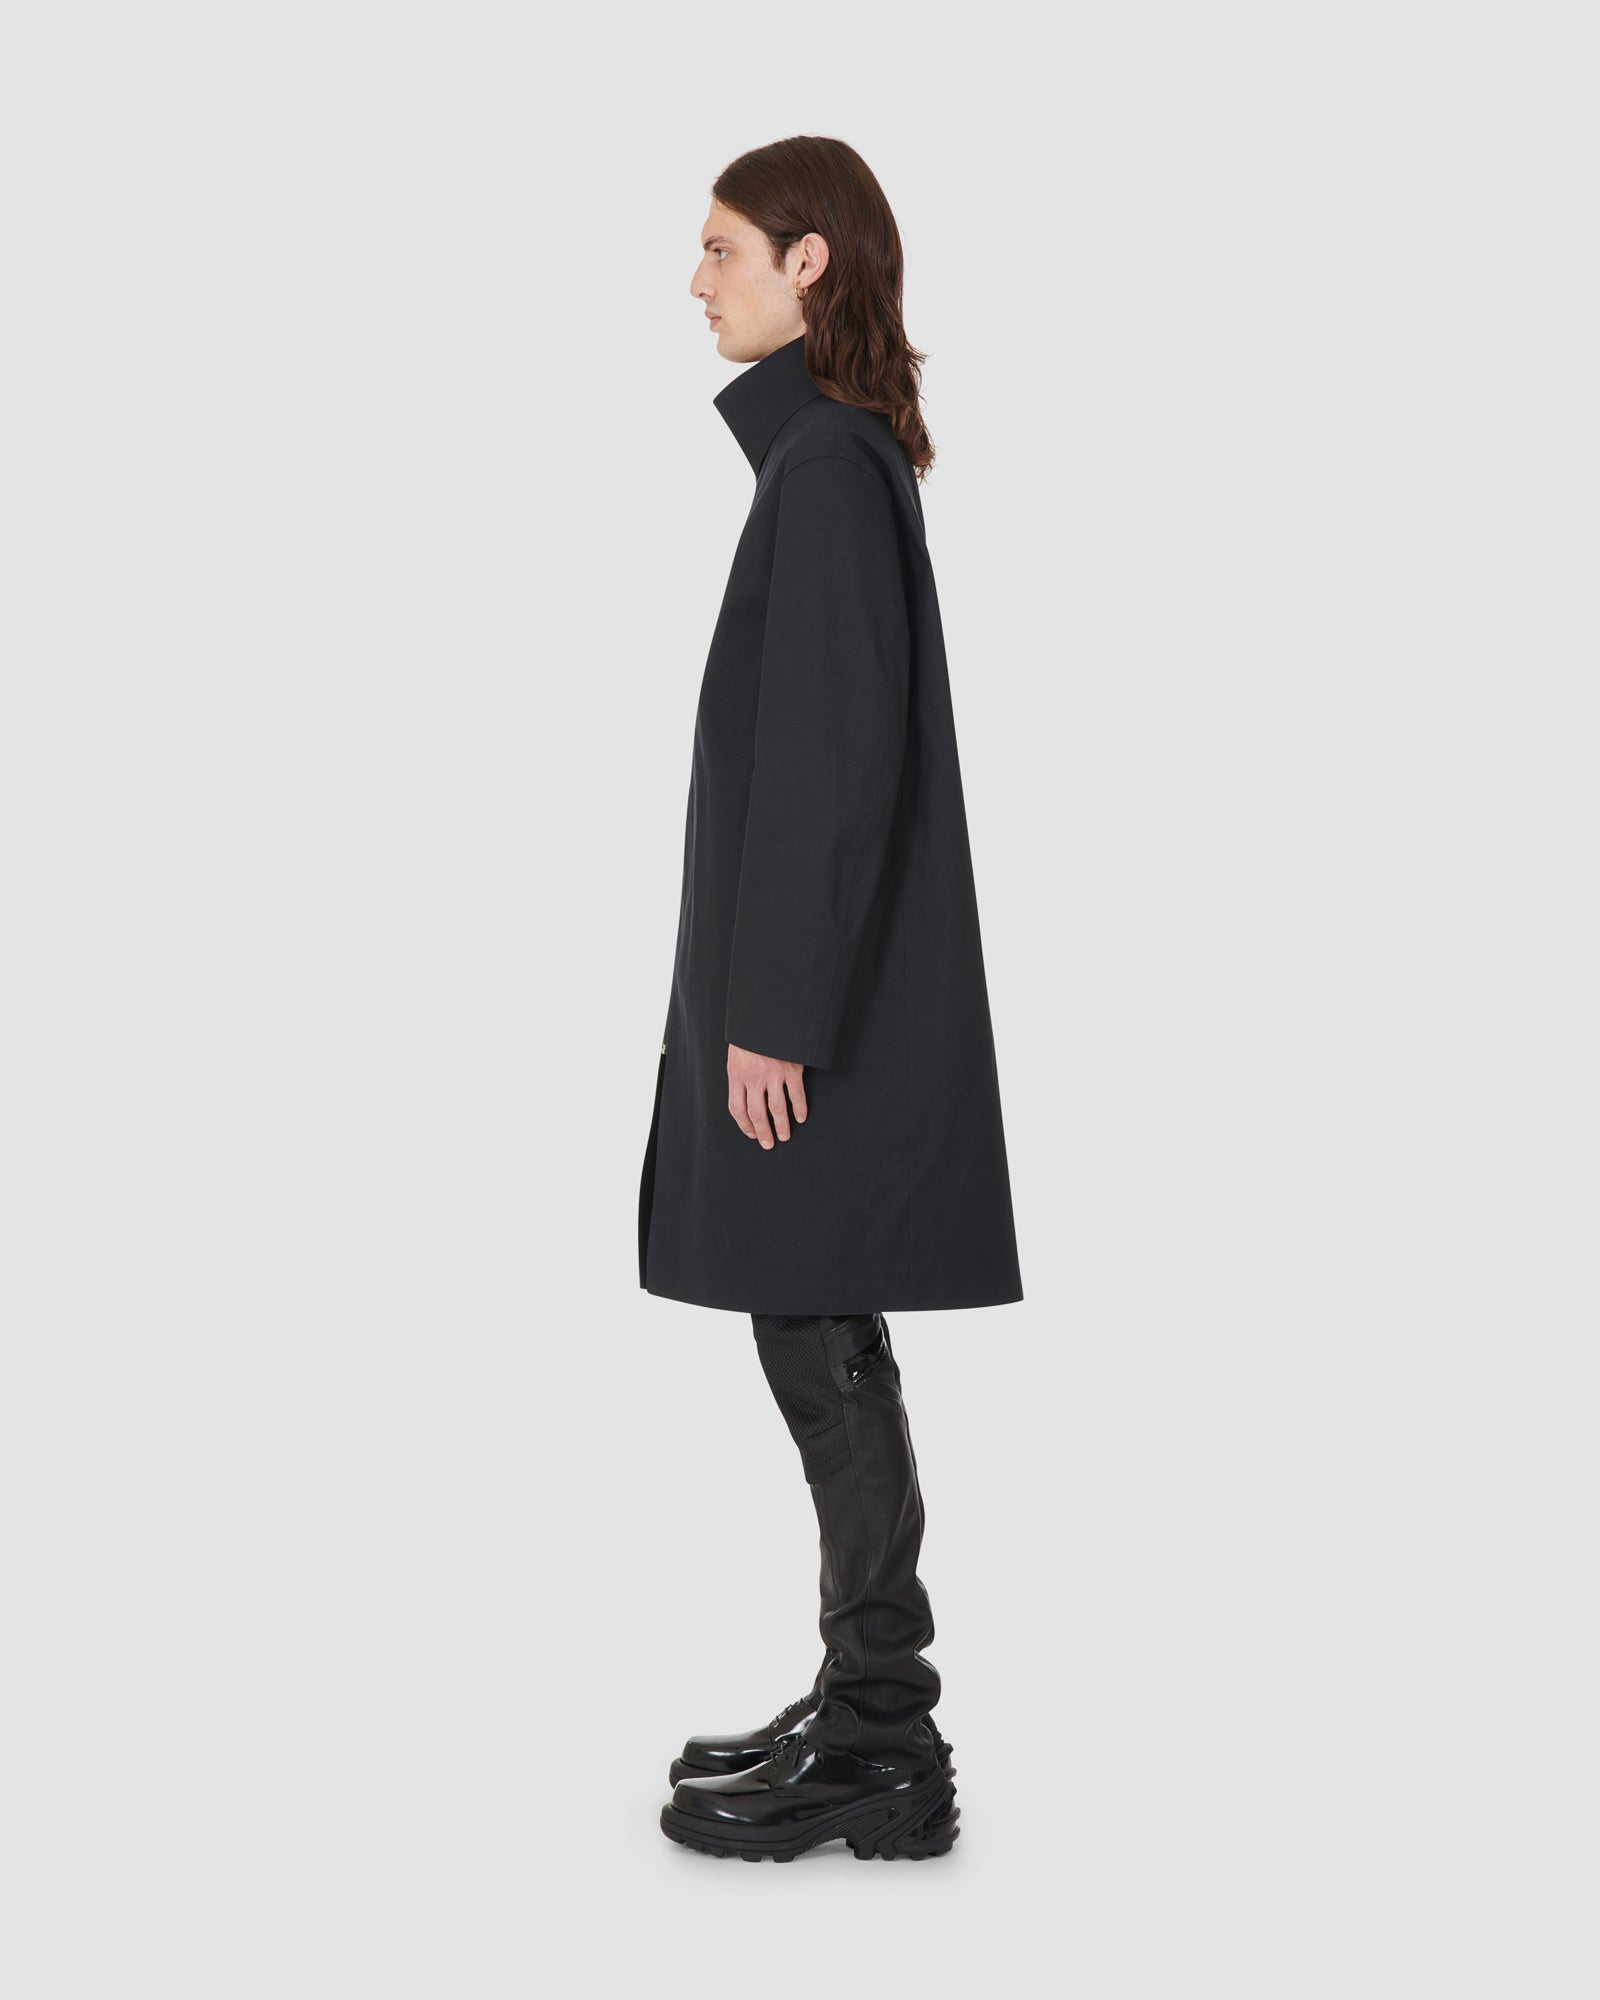 1017 ALYX 9SM | MACKINTOSH STAZIONE LONG COAT | Outerwear | BLACK, Google Shopping, Mackintosh, Man, OUTERWEAR, S20, UNISEX